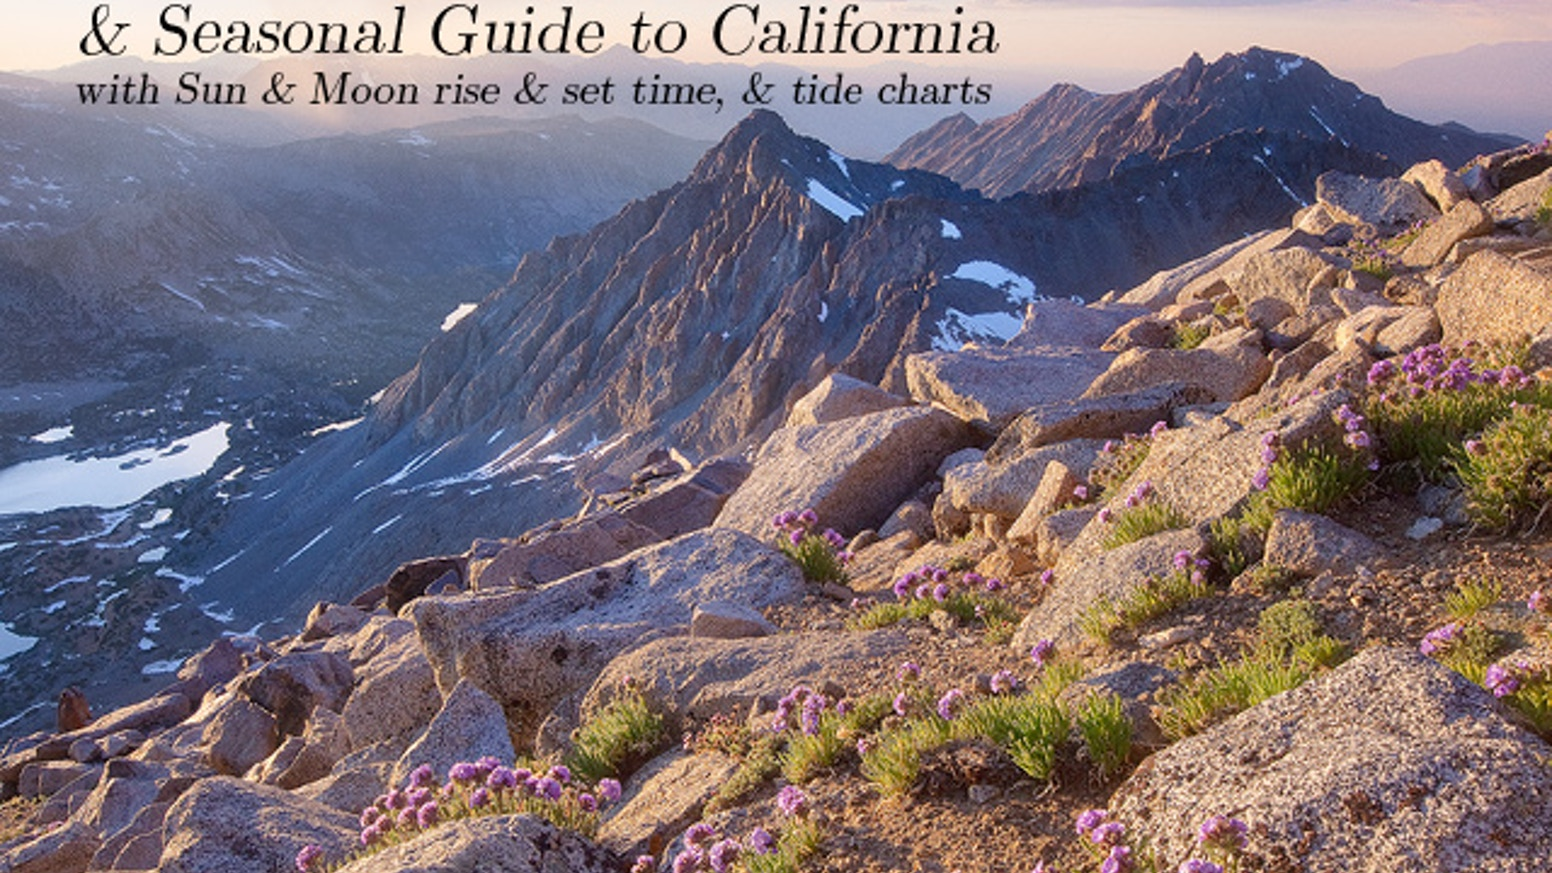 2014 Calendar & Seasonal Guide to Washington and California by